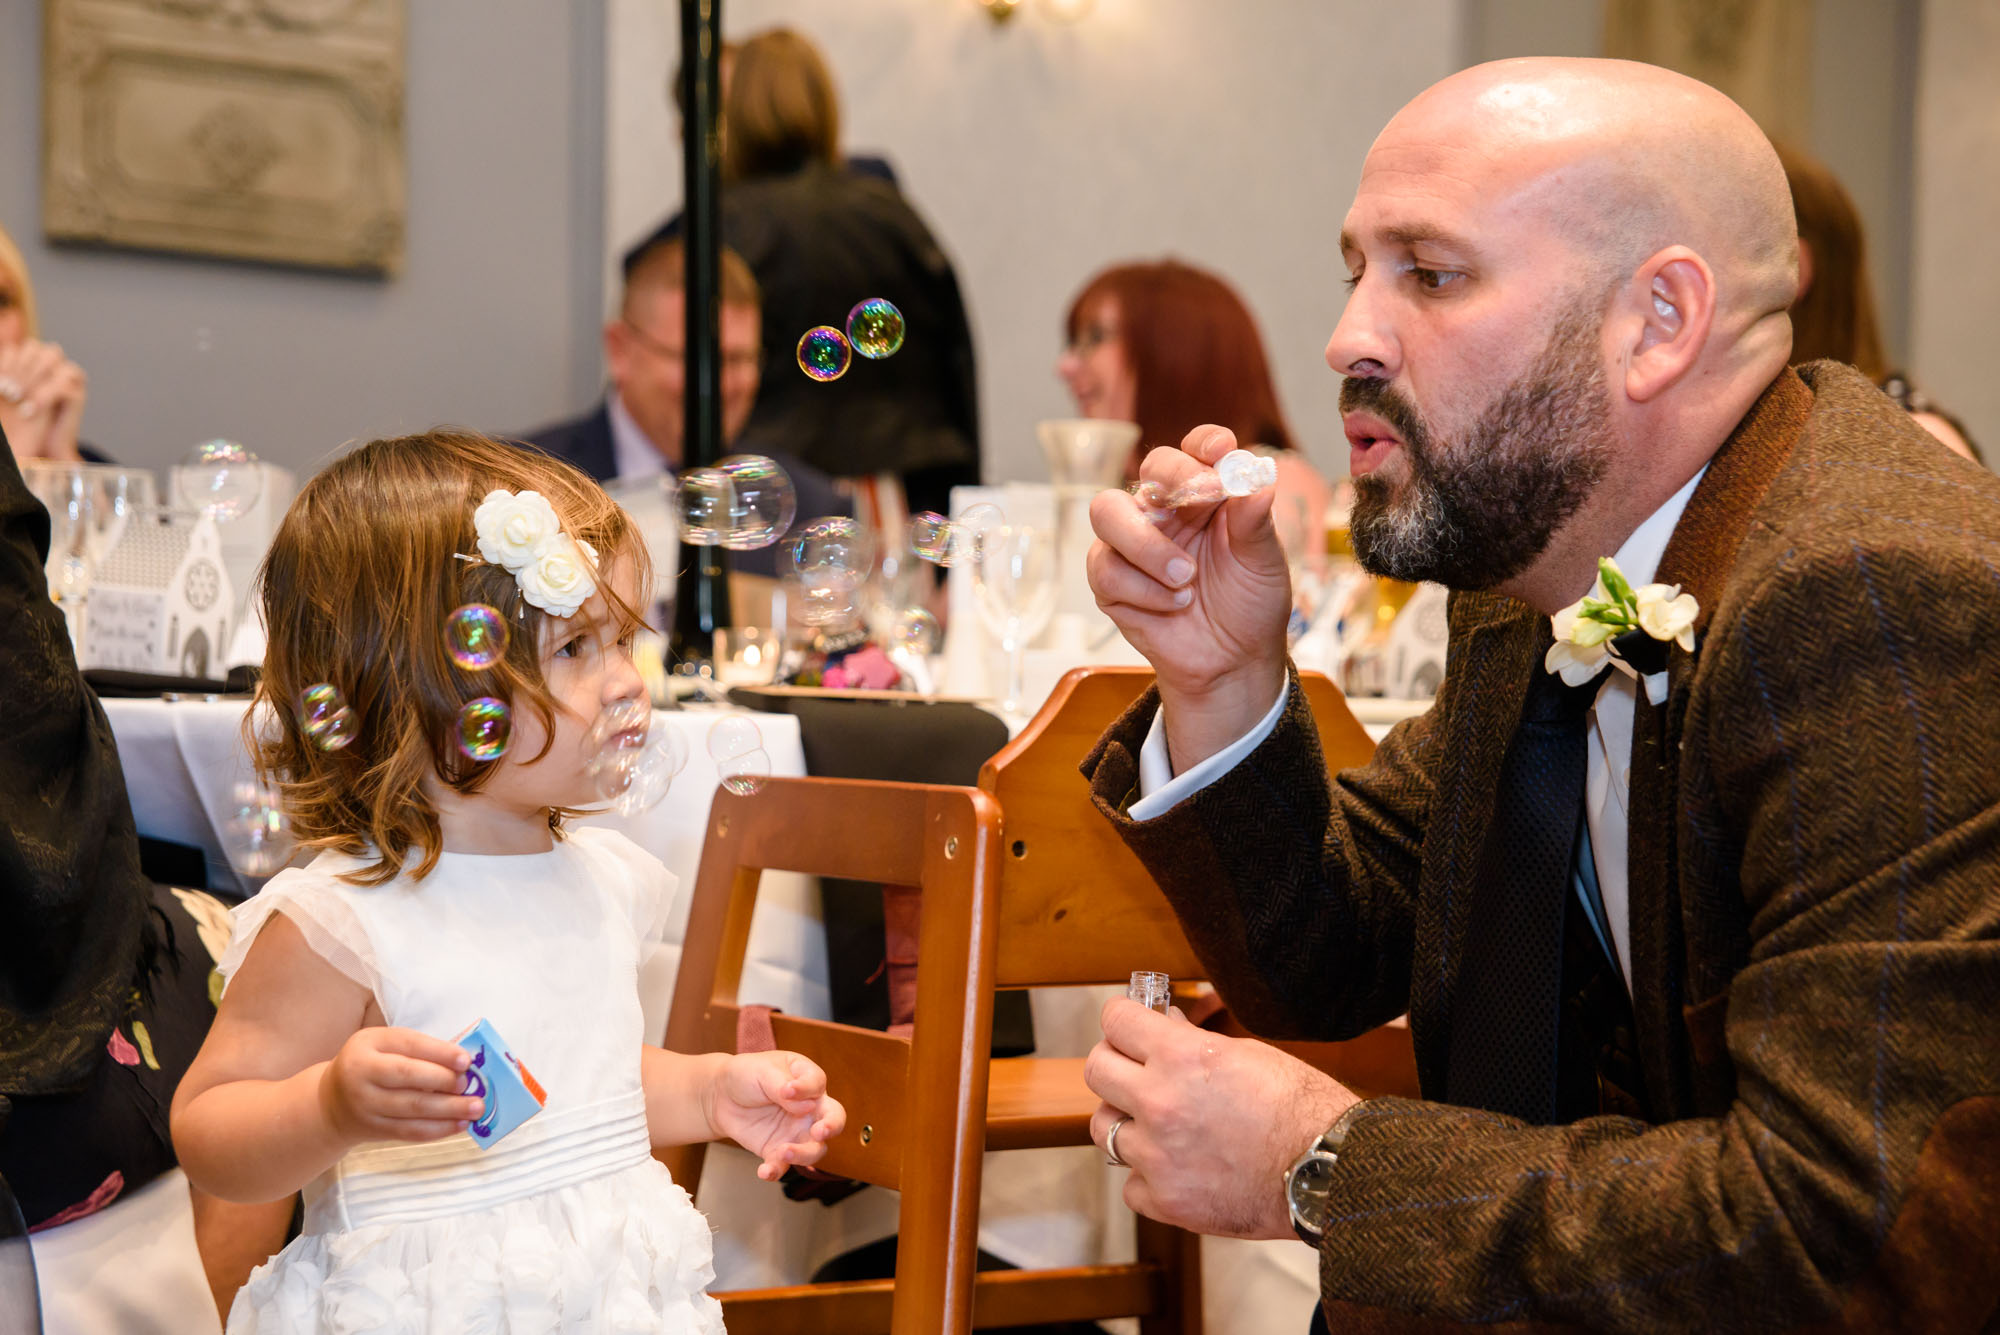 Flower girl playing with bubbles